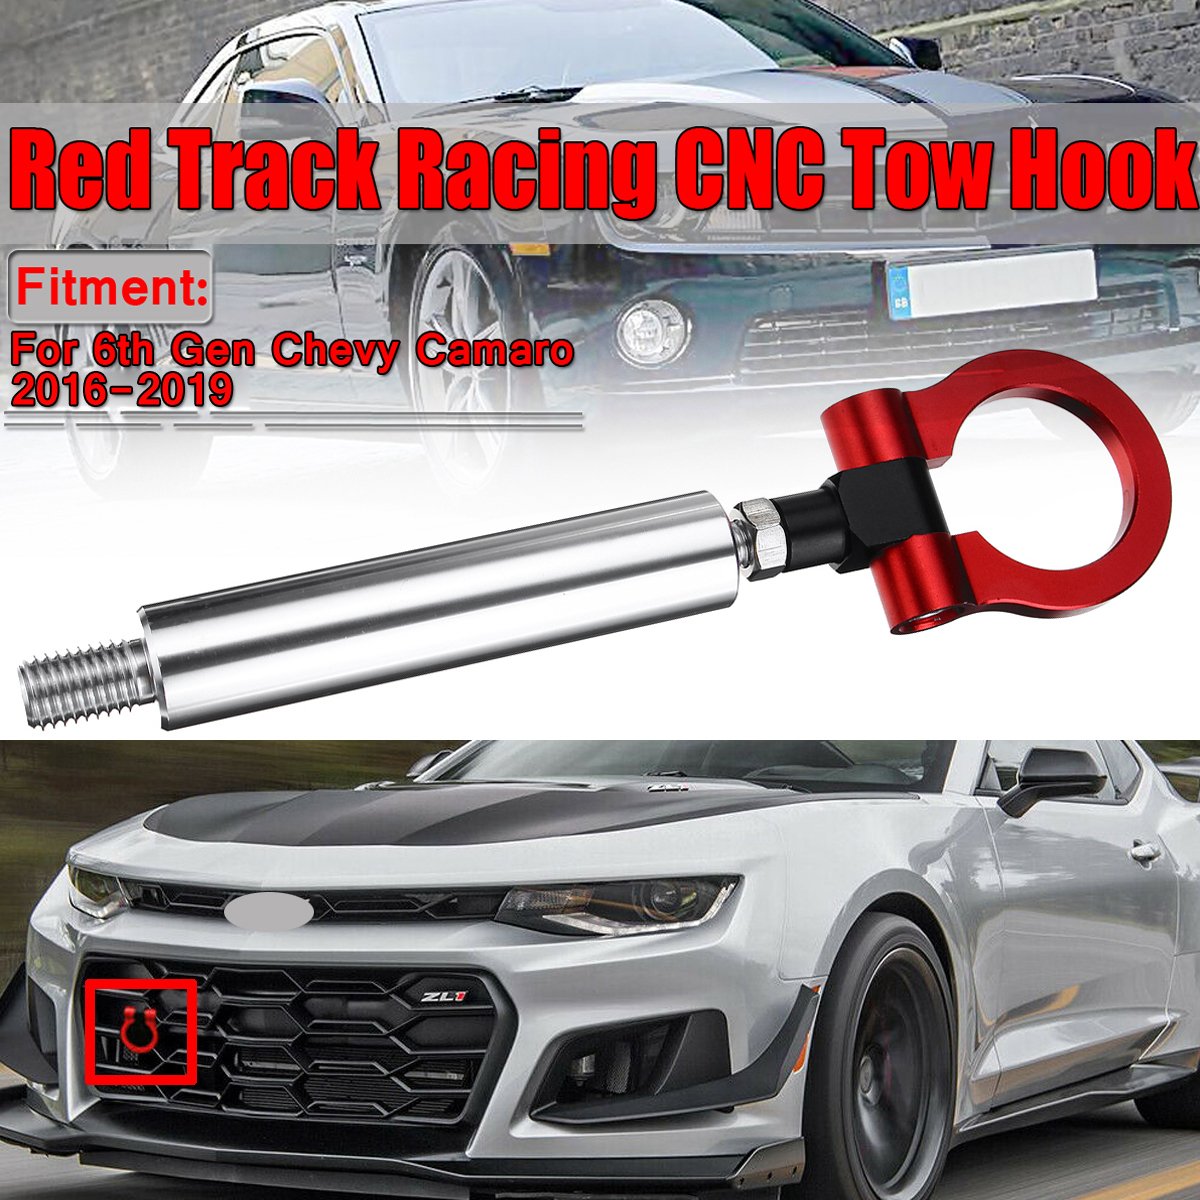 Car Racing Trailer Track Racing CNC Tow Hook Car Lancer Towing Bars For 6th Gen For Chevy Camaro 2016-2019 Aluminum Red